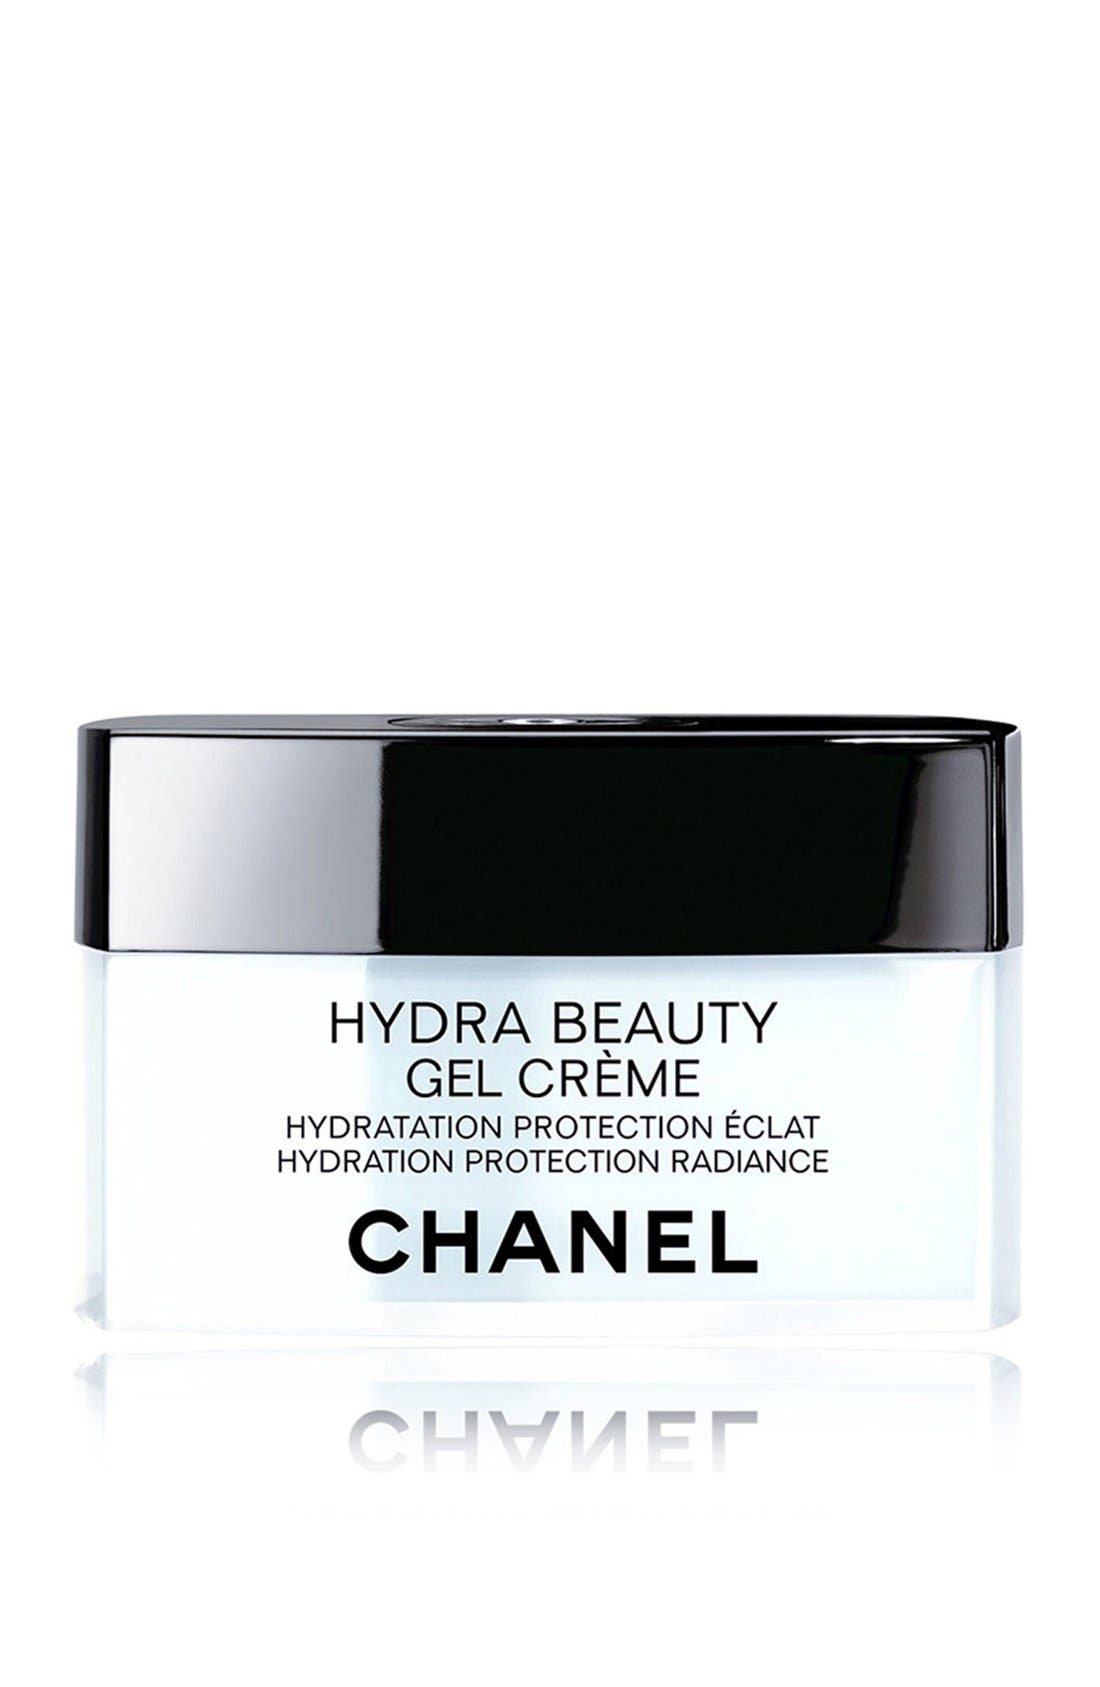 CHANEL HYDRA BEAUTY GEL CRÈME  Hydration Protection Radiance | Nordstrom